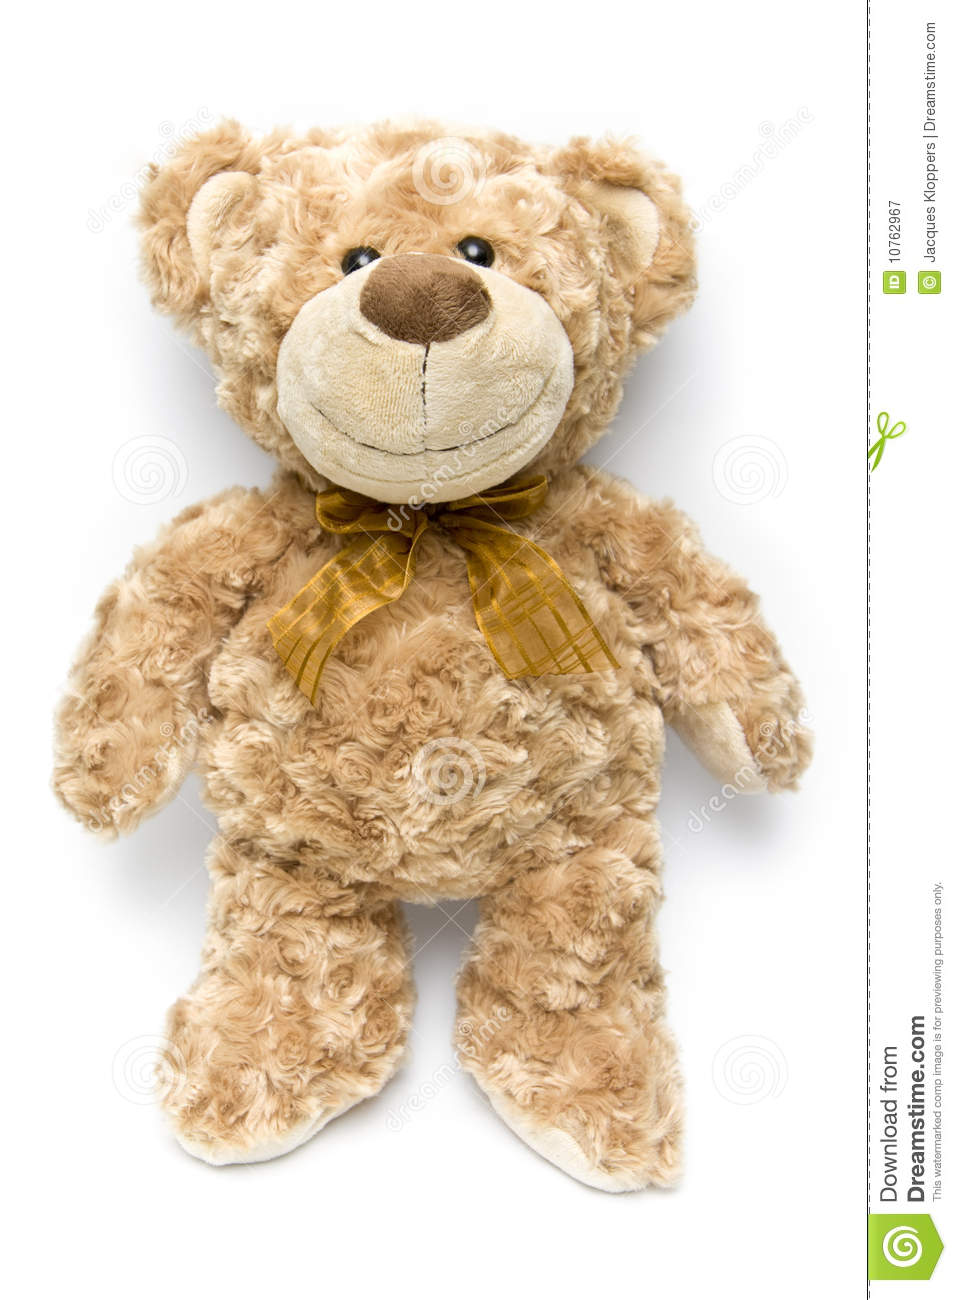 Fluffy Brown Teddy Bear Standing Up Royalty Free Stock